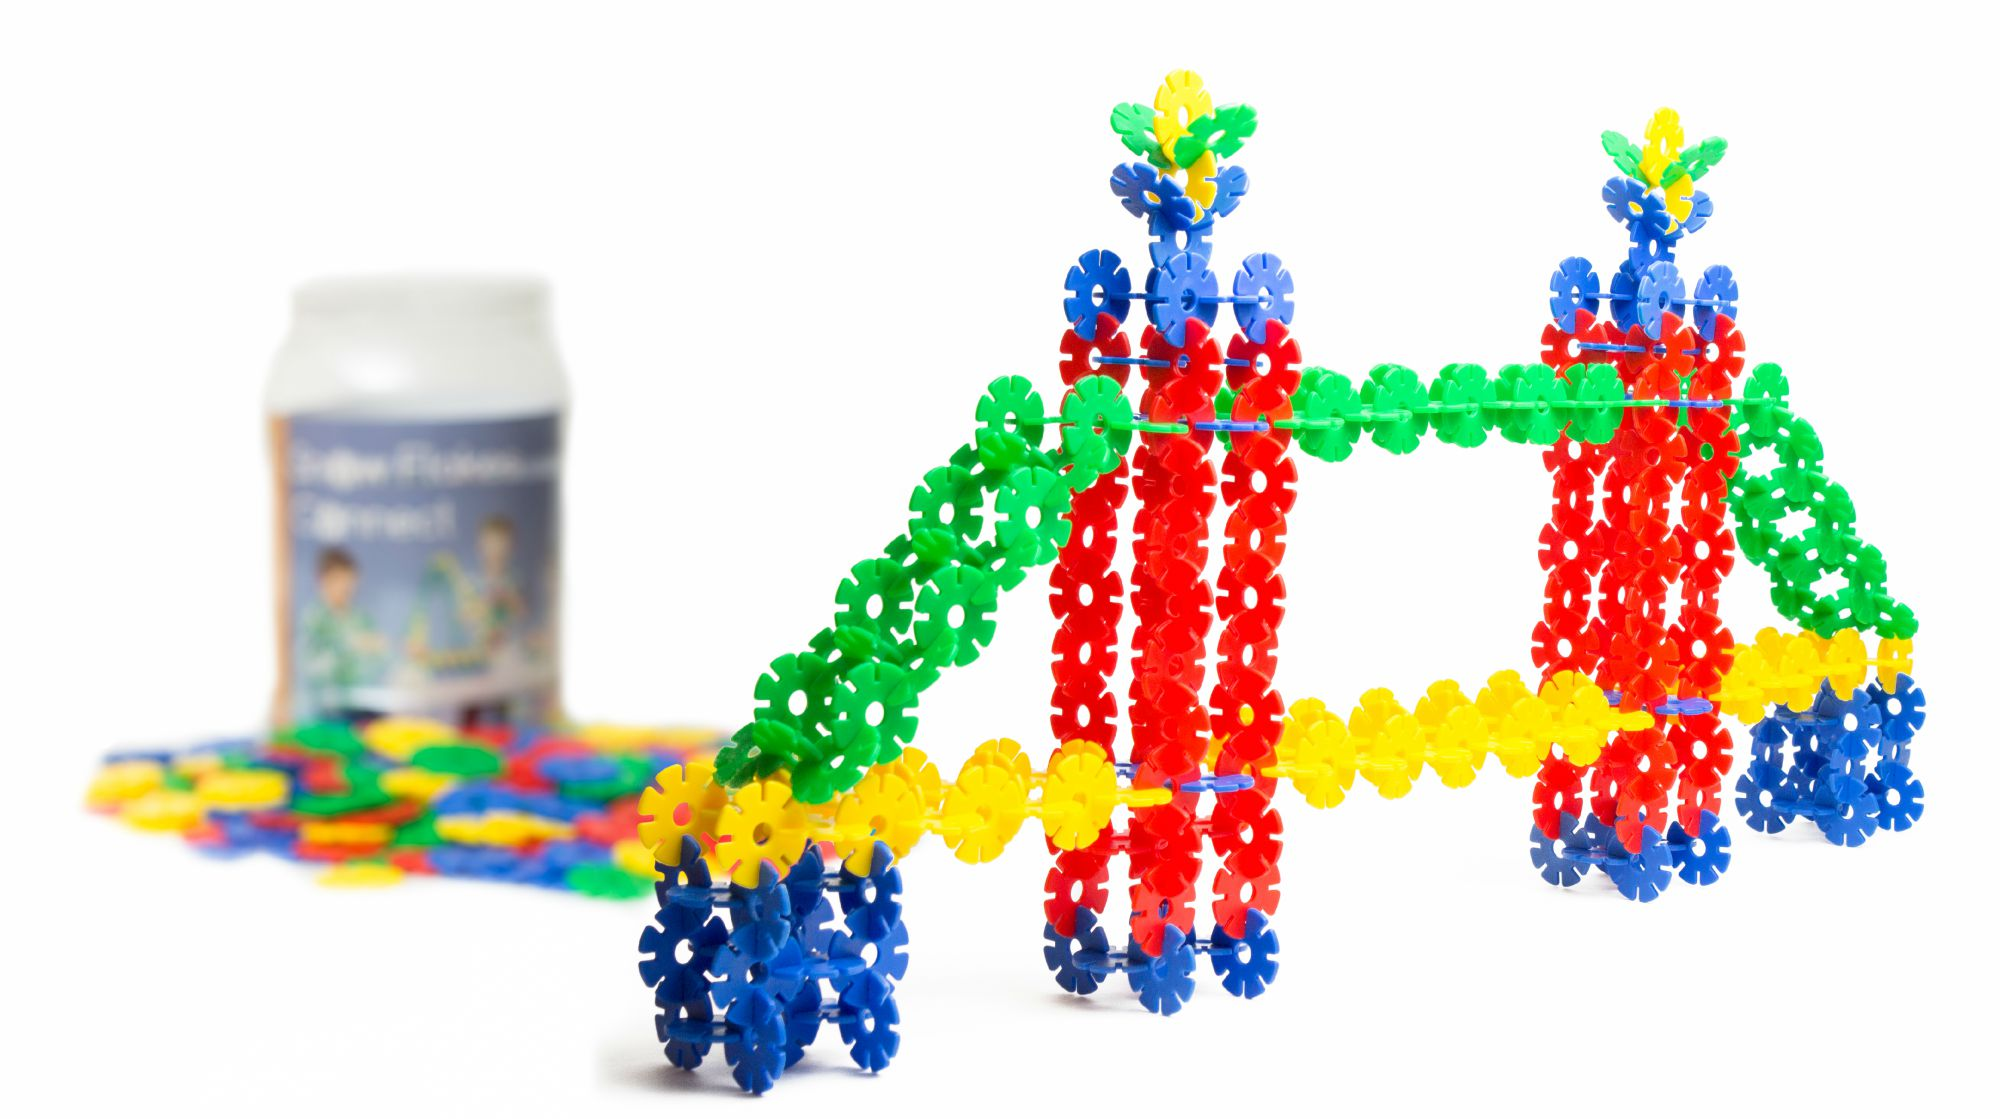 Little genius minds launches snowflakes connect on amazon all new engineering toy that Fine motor development toys